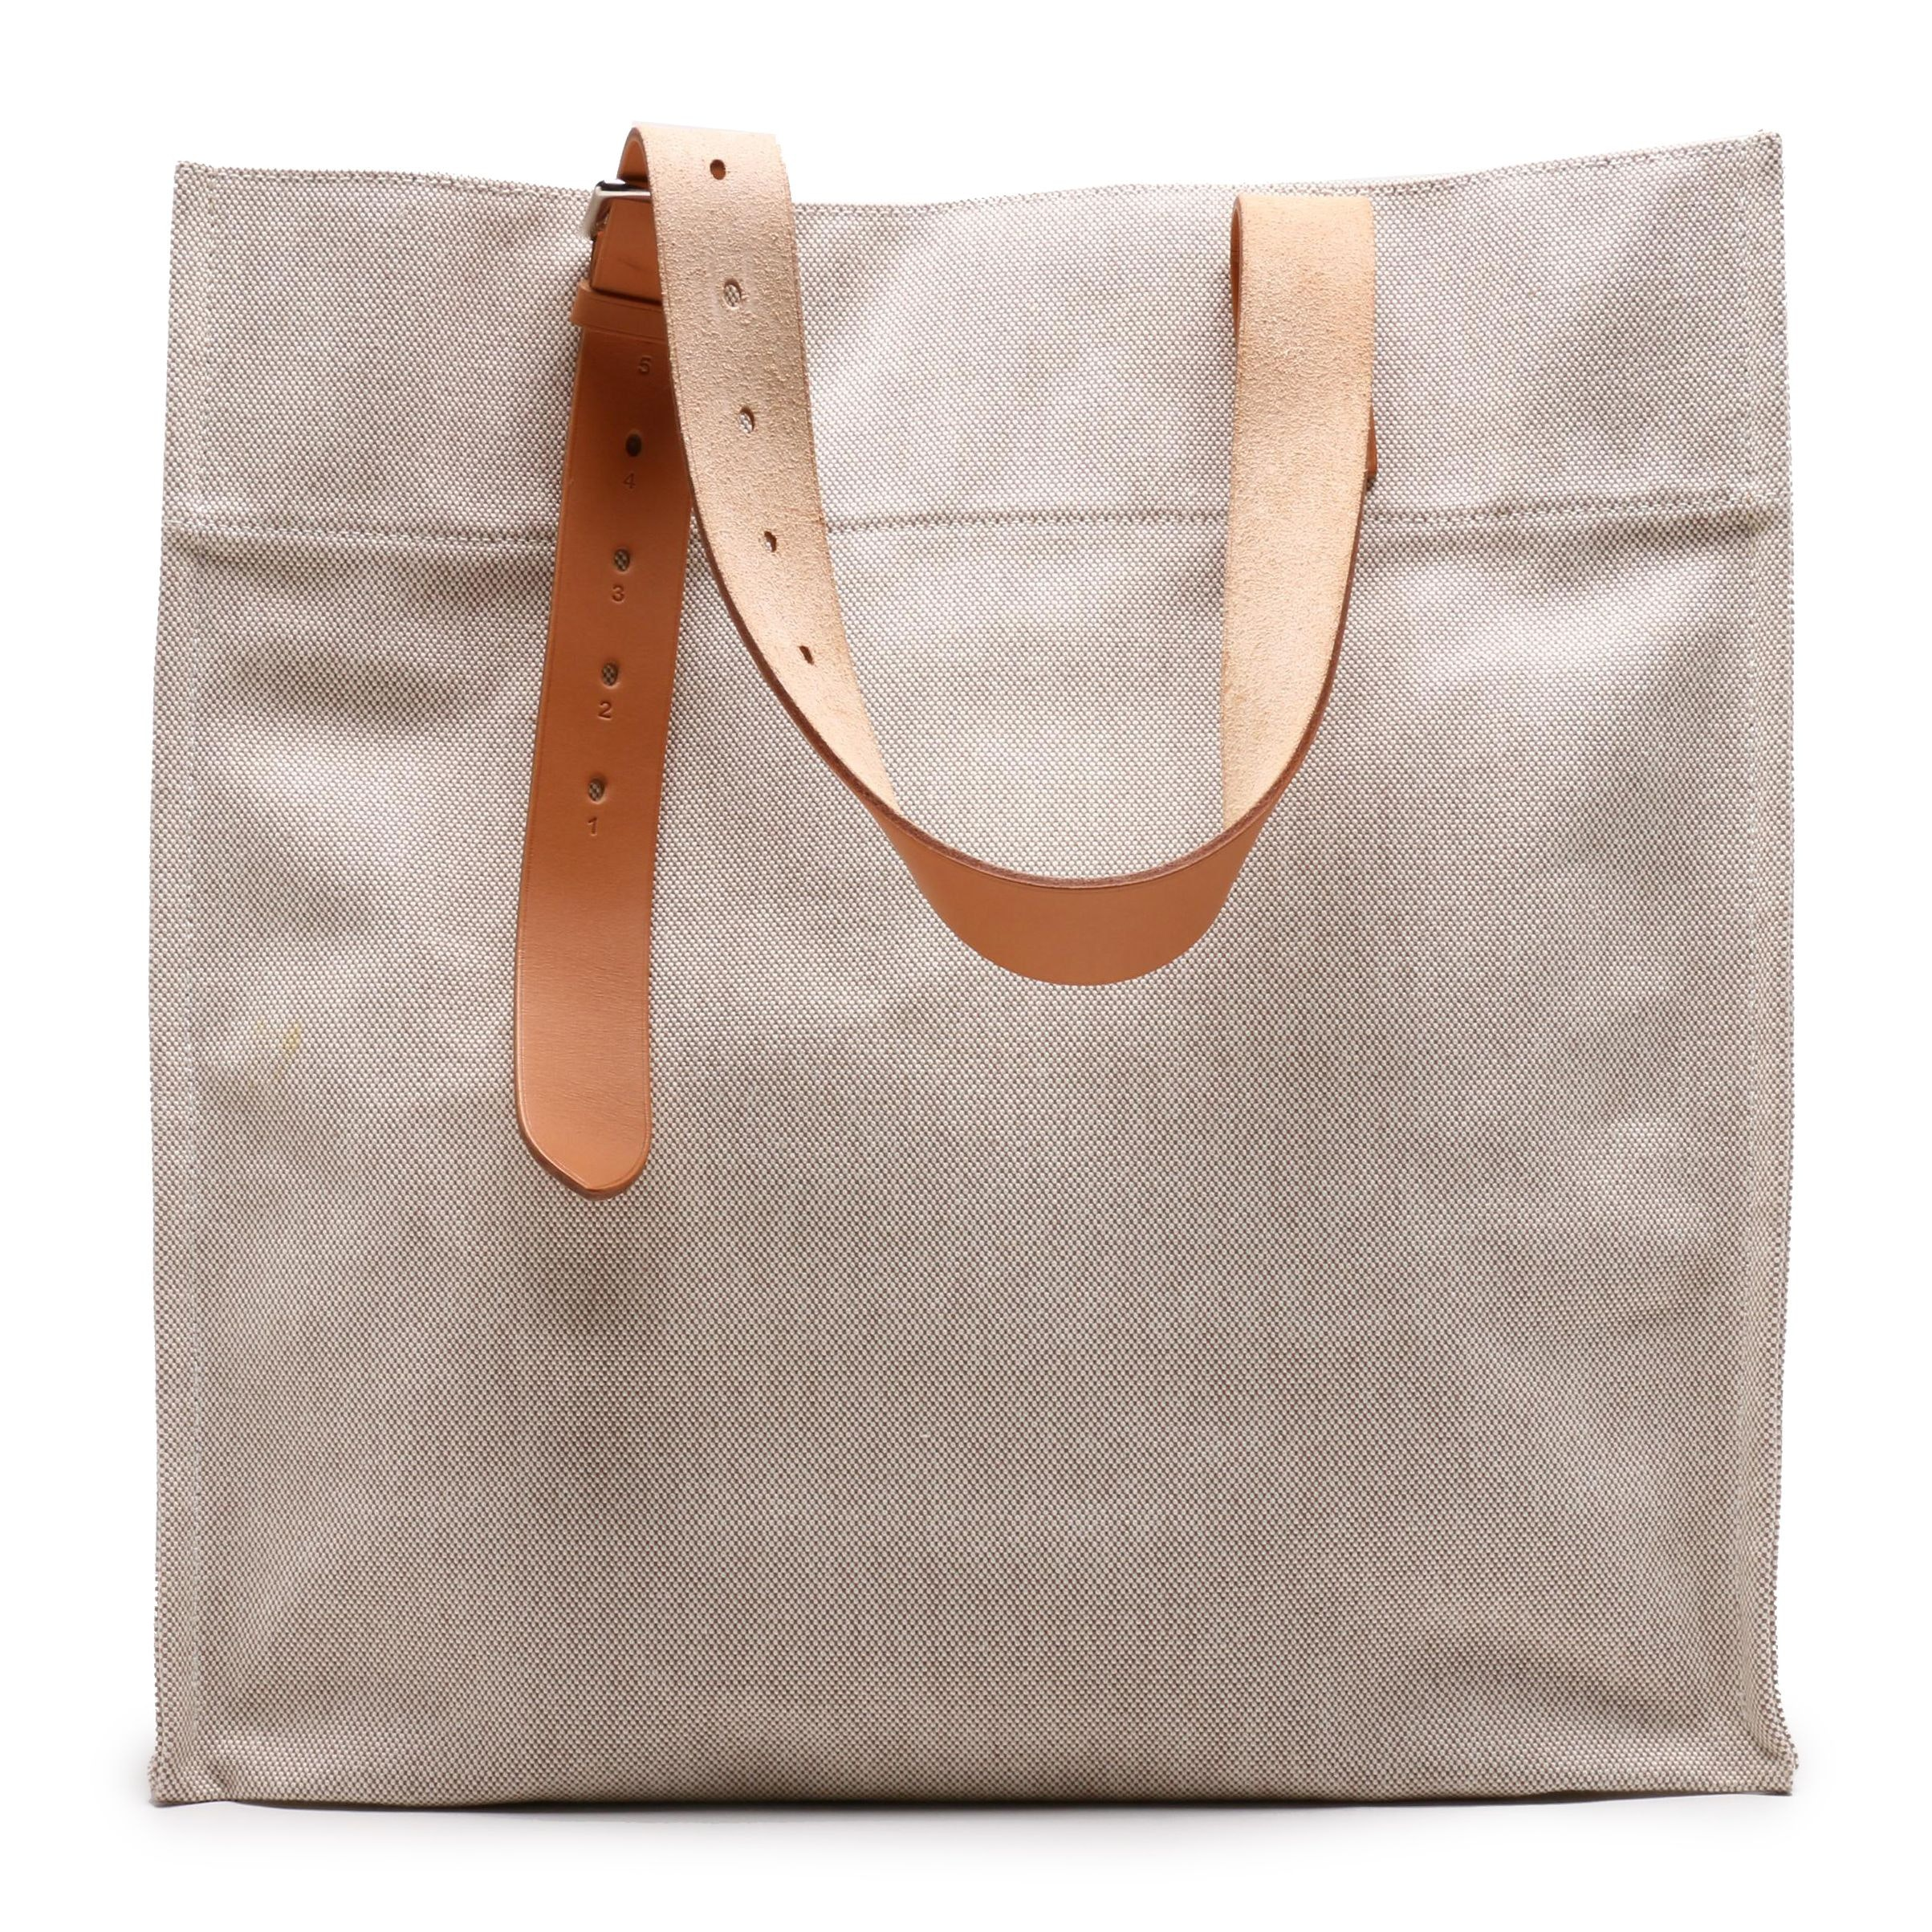 Hermès Canvas and Natural Vache Hunter Leather Etrivière Shopping Tote Bag